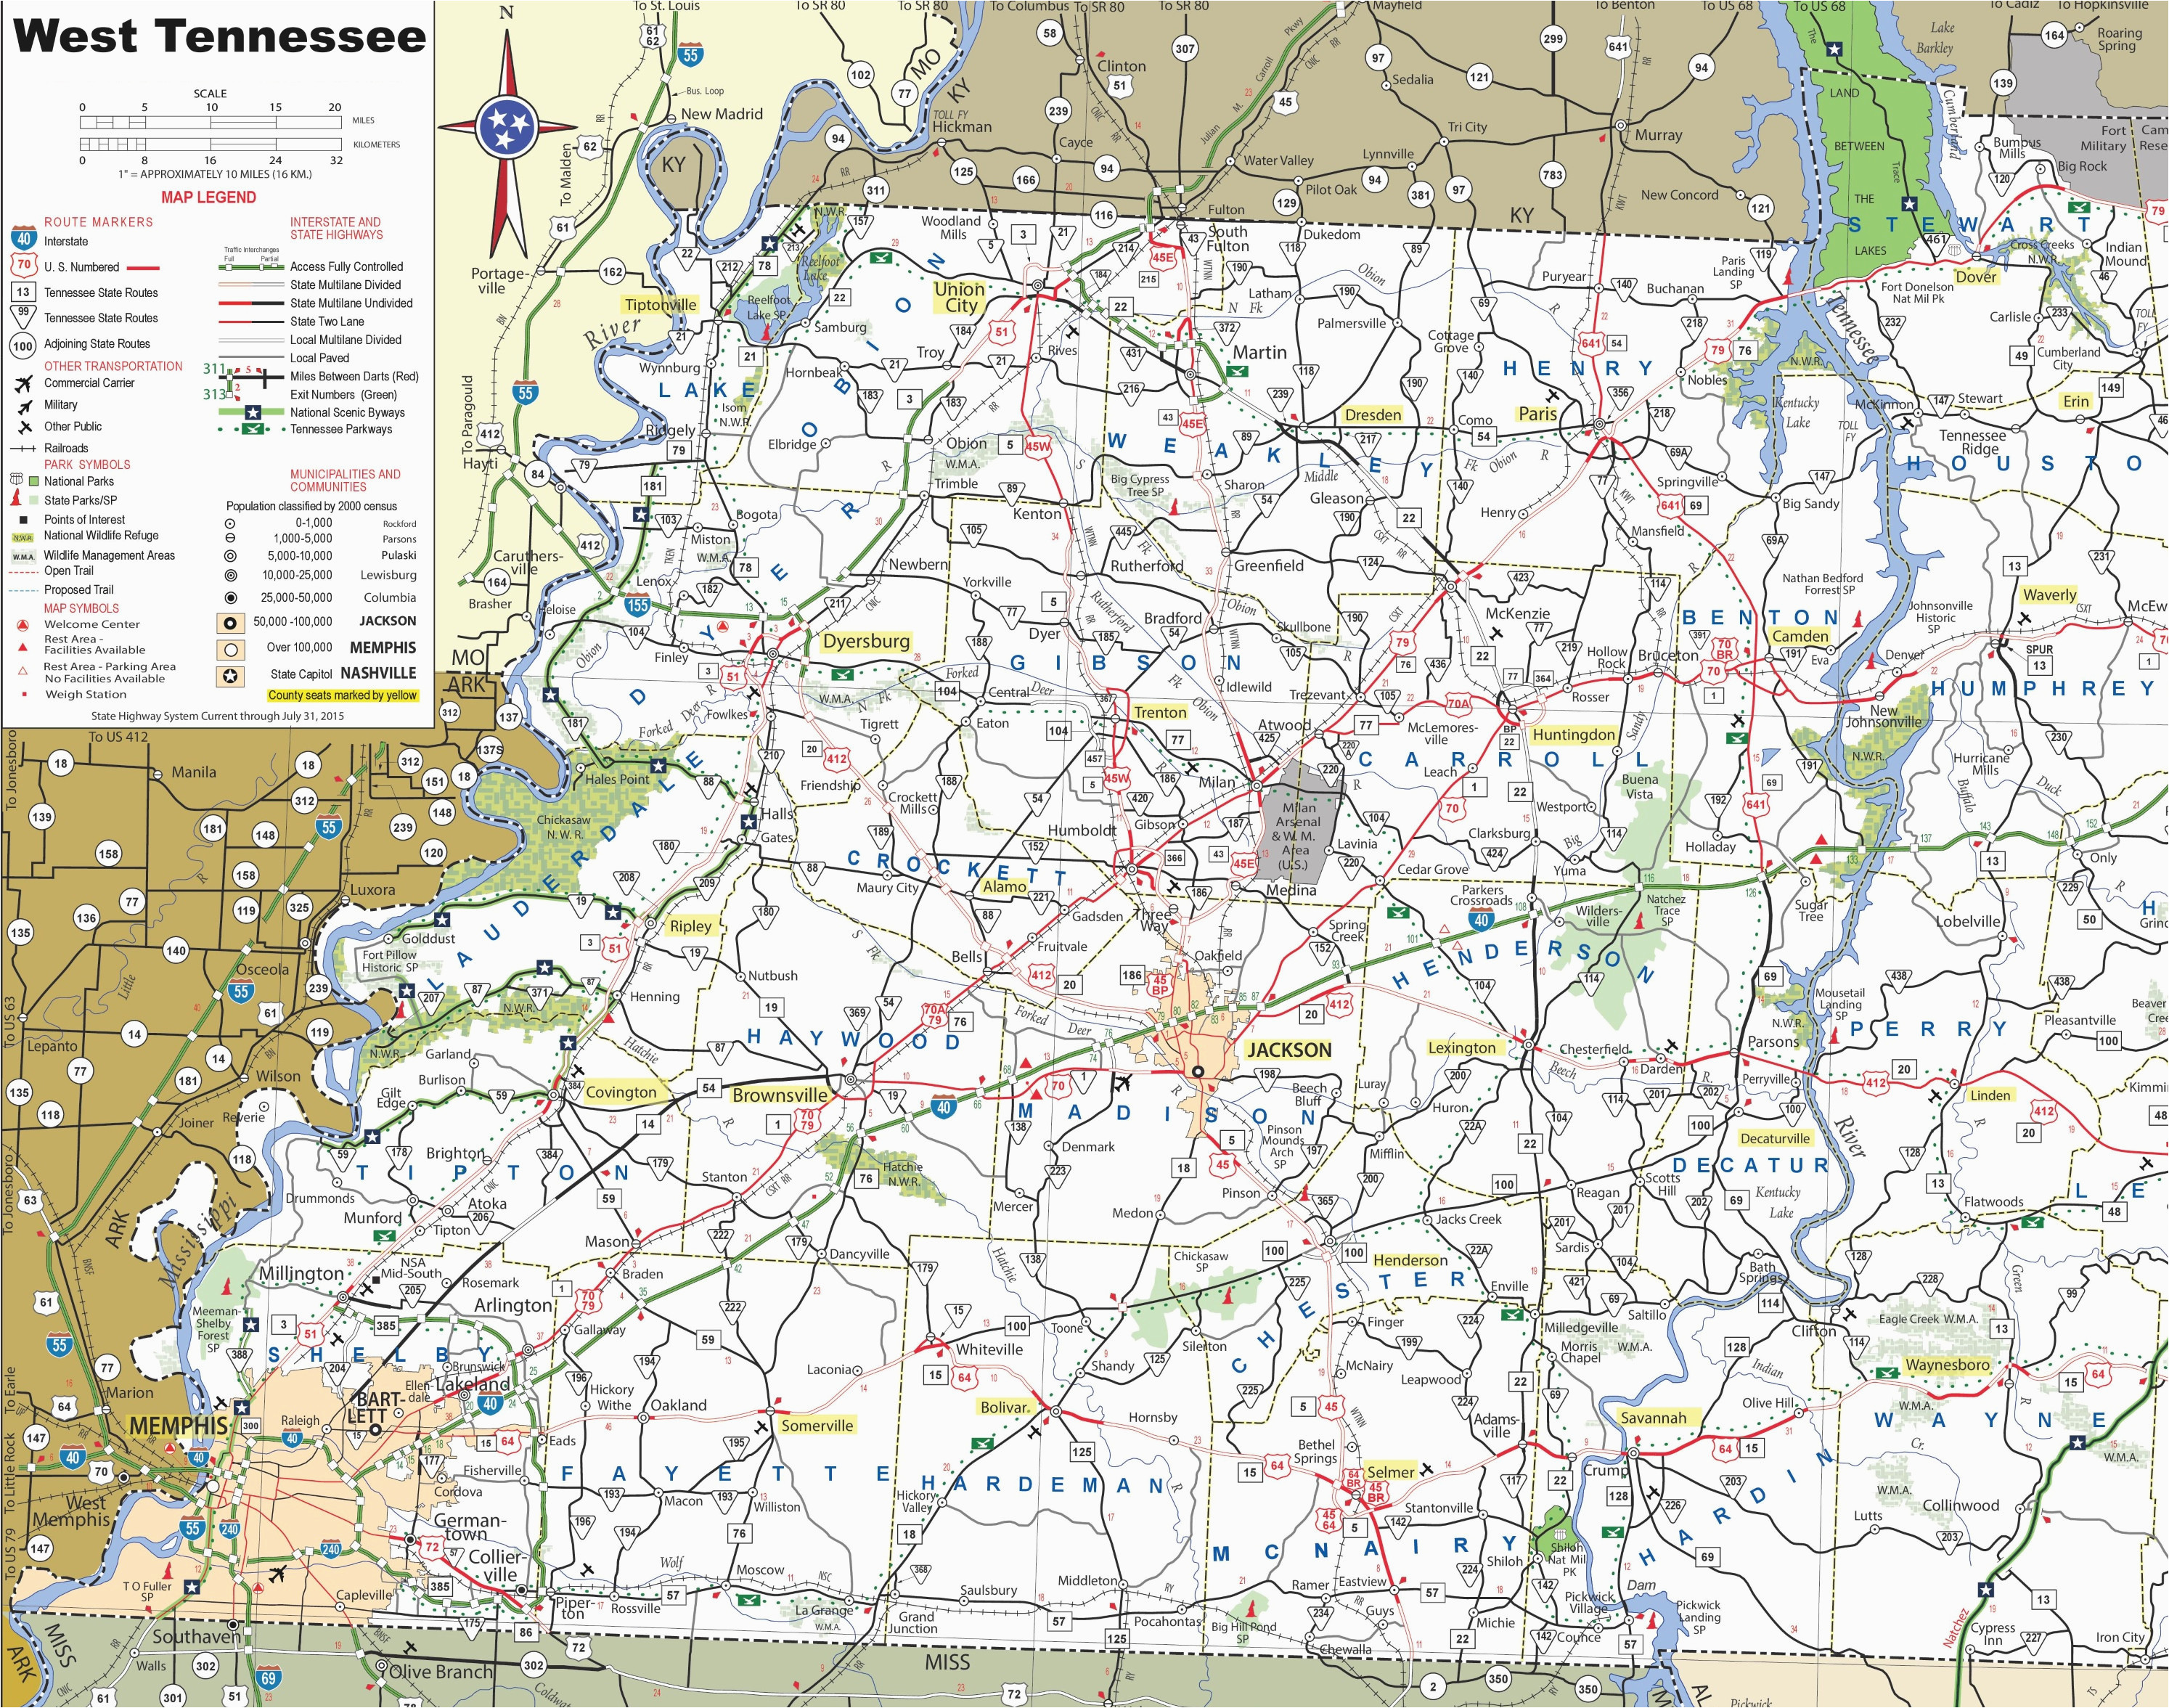 jackson tn map beautiful tennessee map major cities best map west